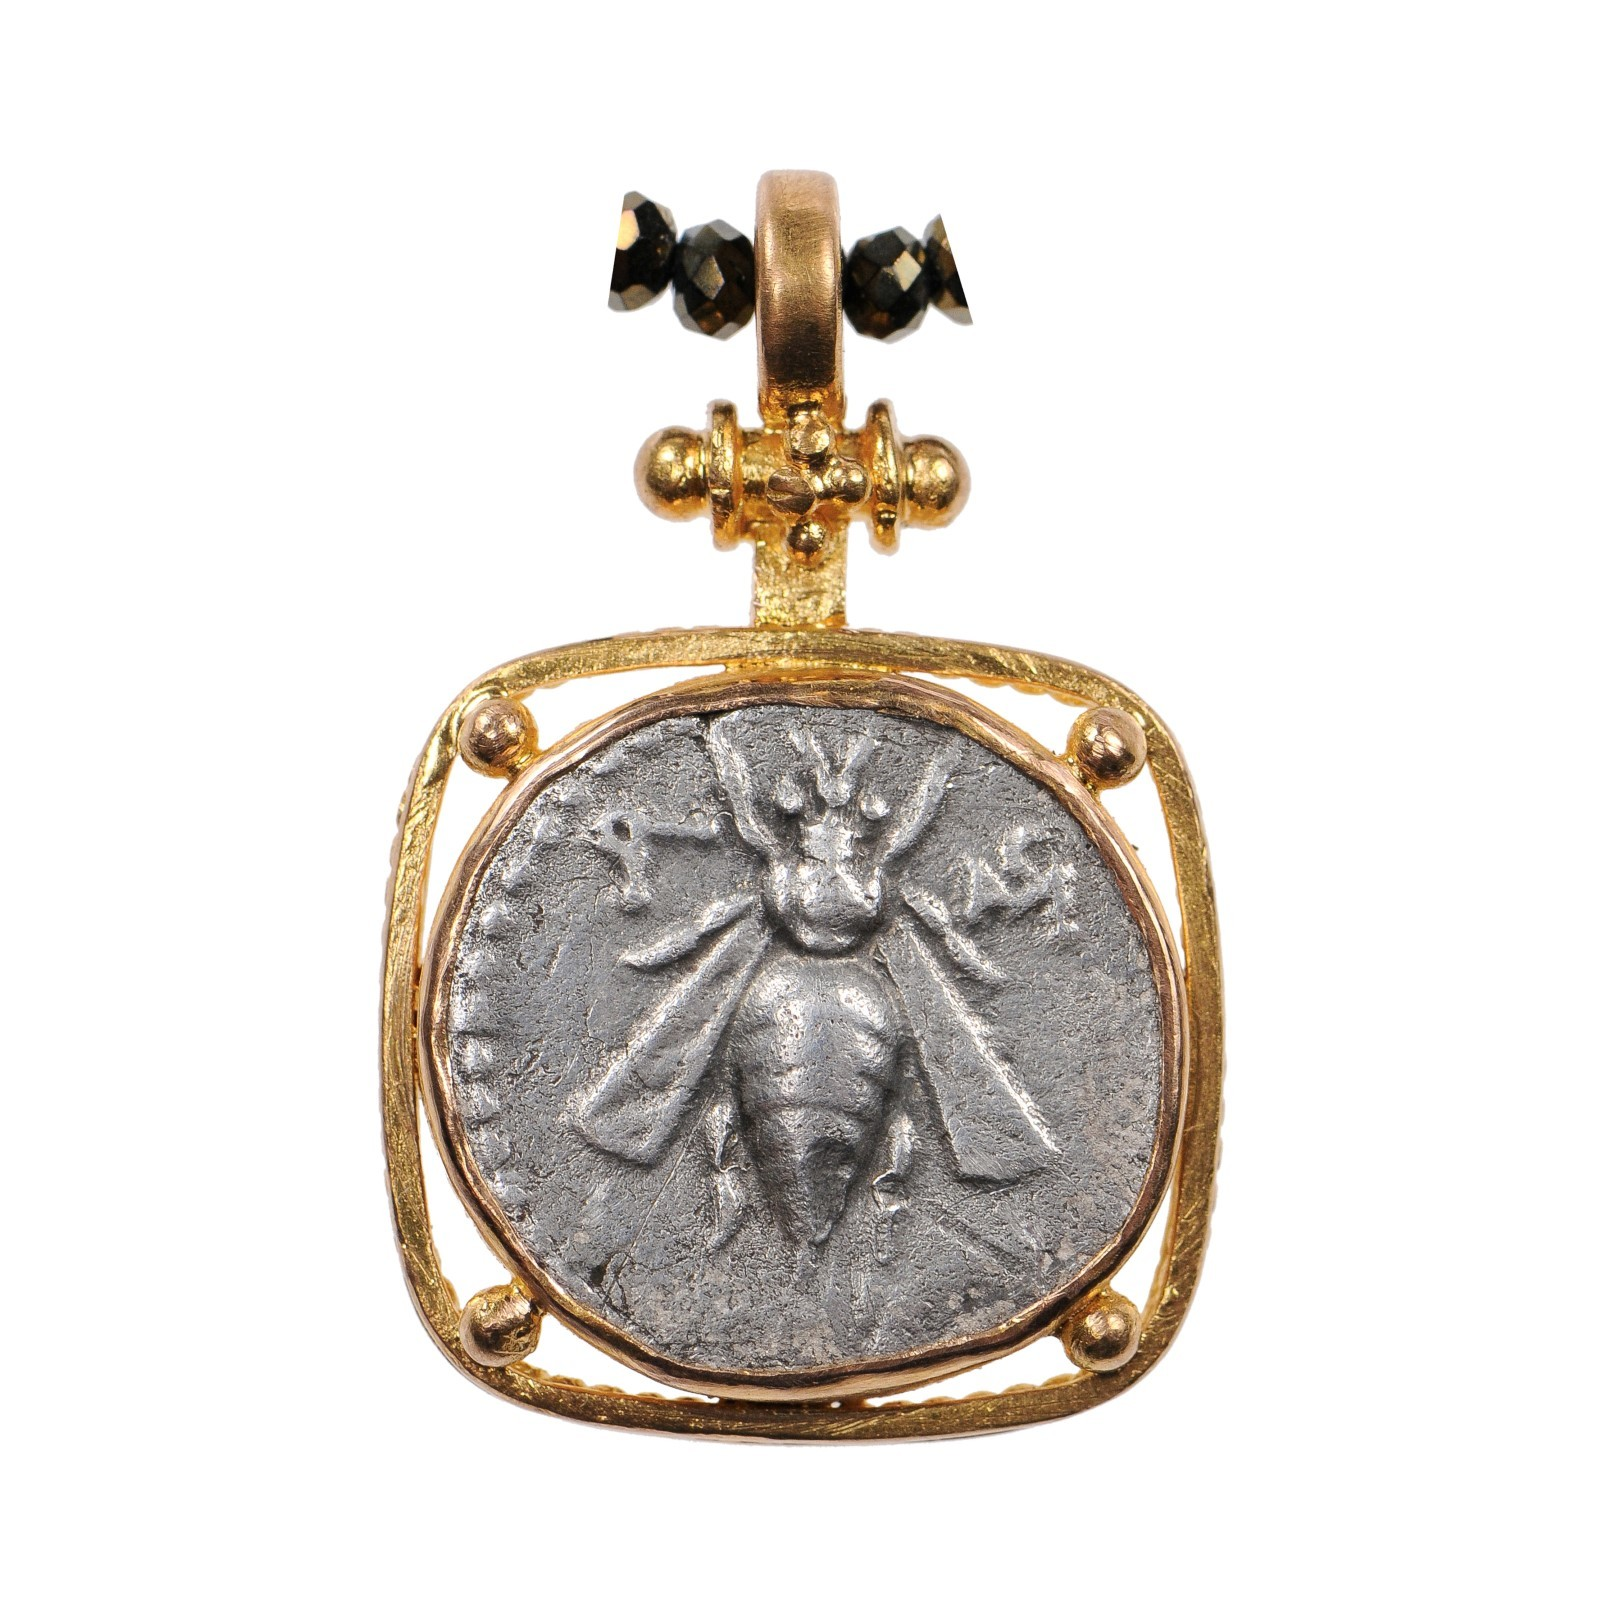 Ancient Bee & Stag Coin, 22 kt Gold Pendant